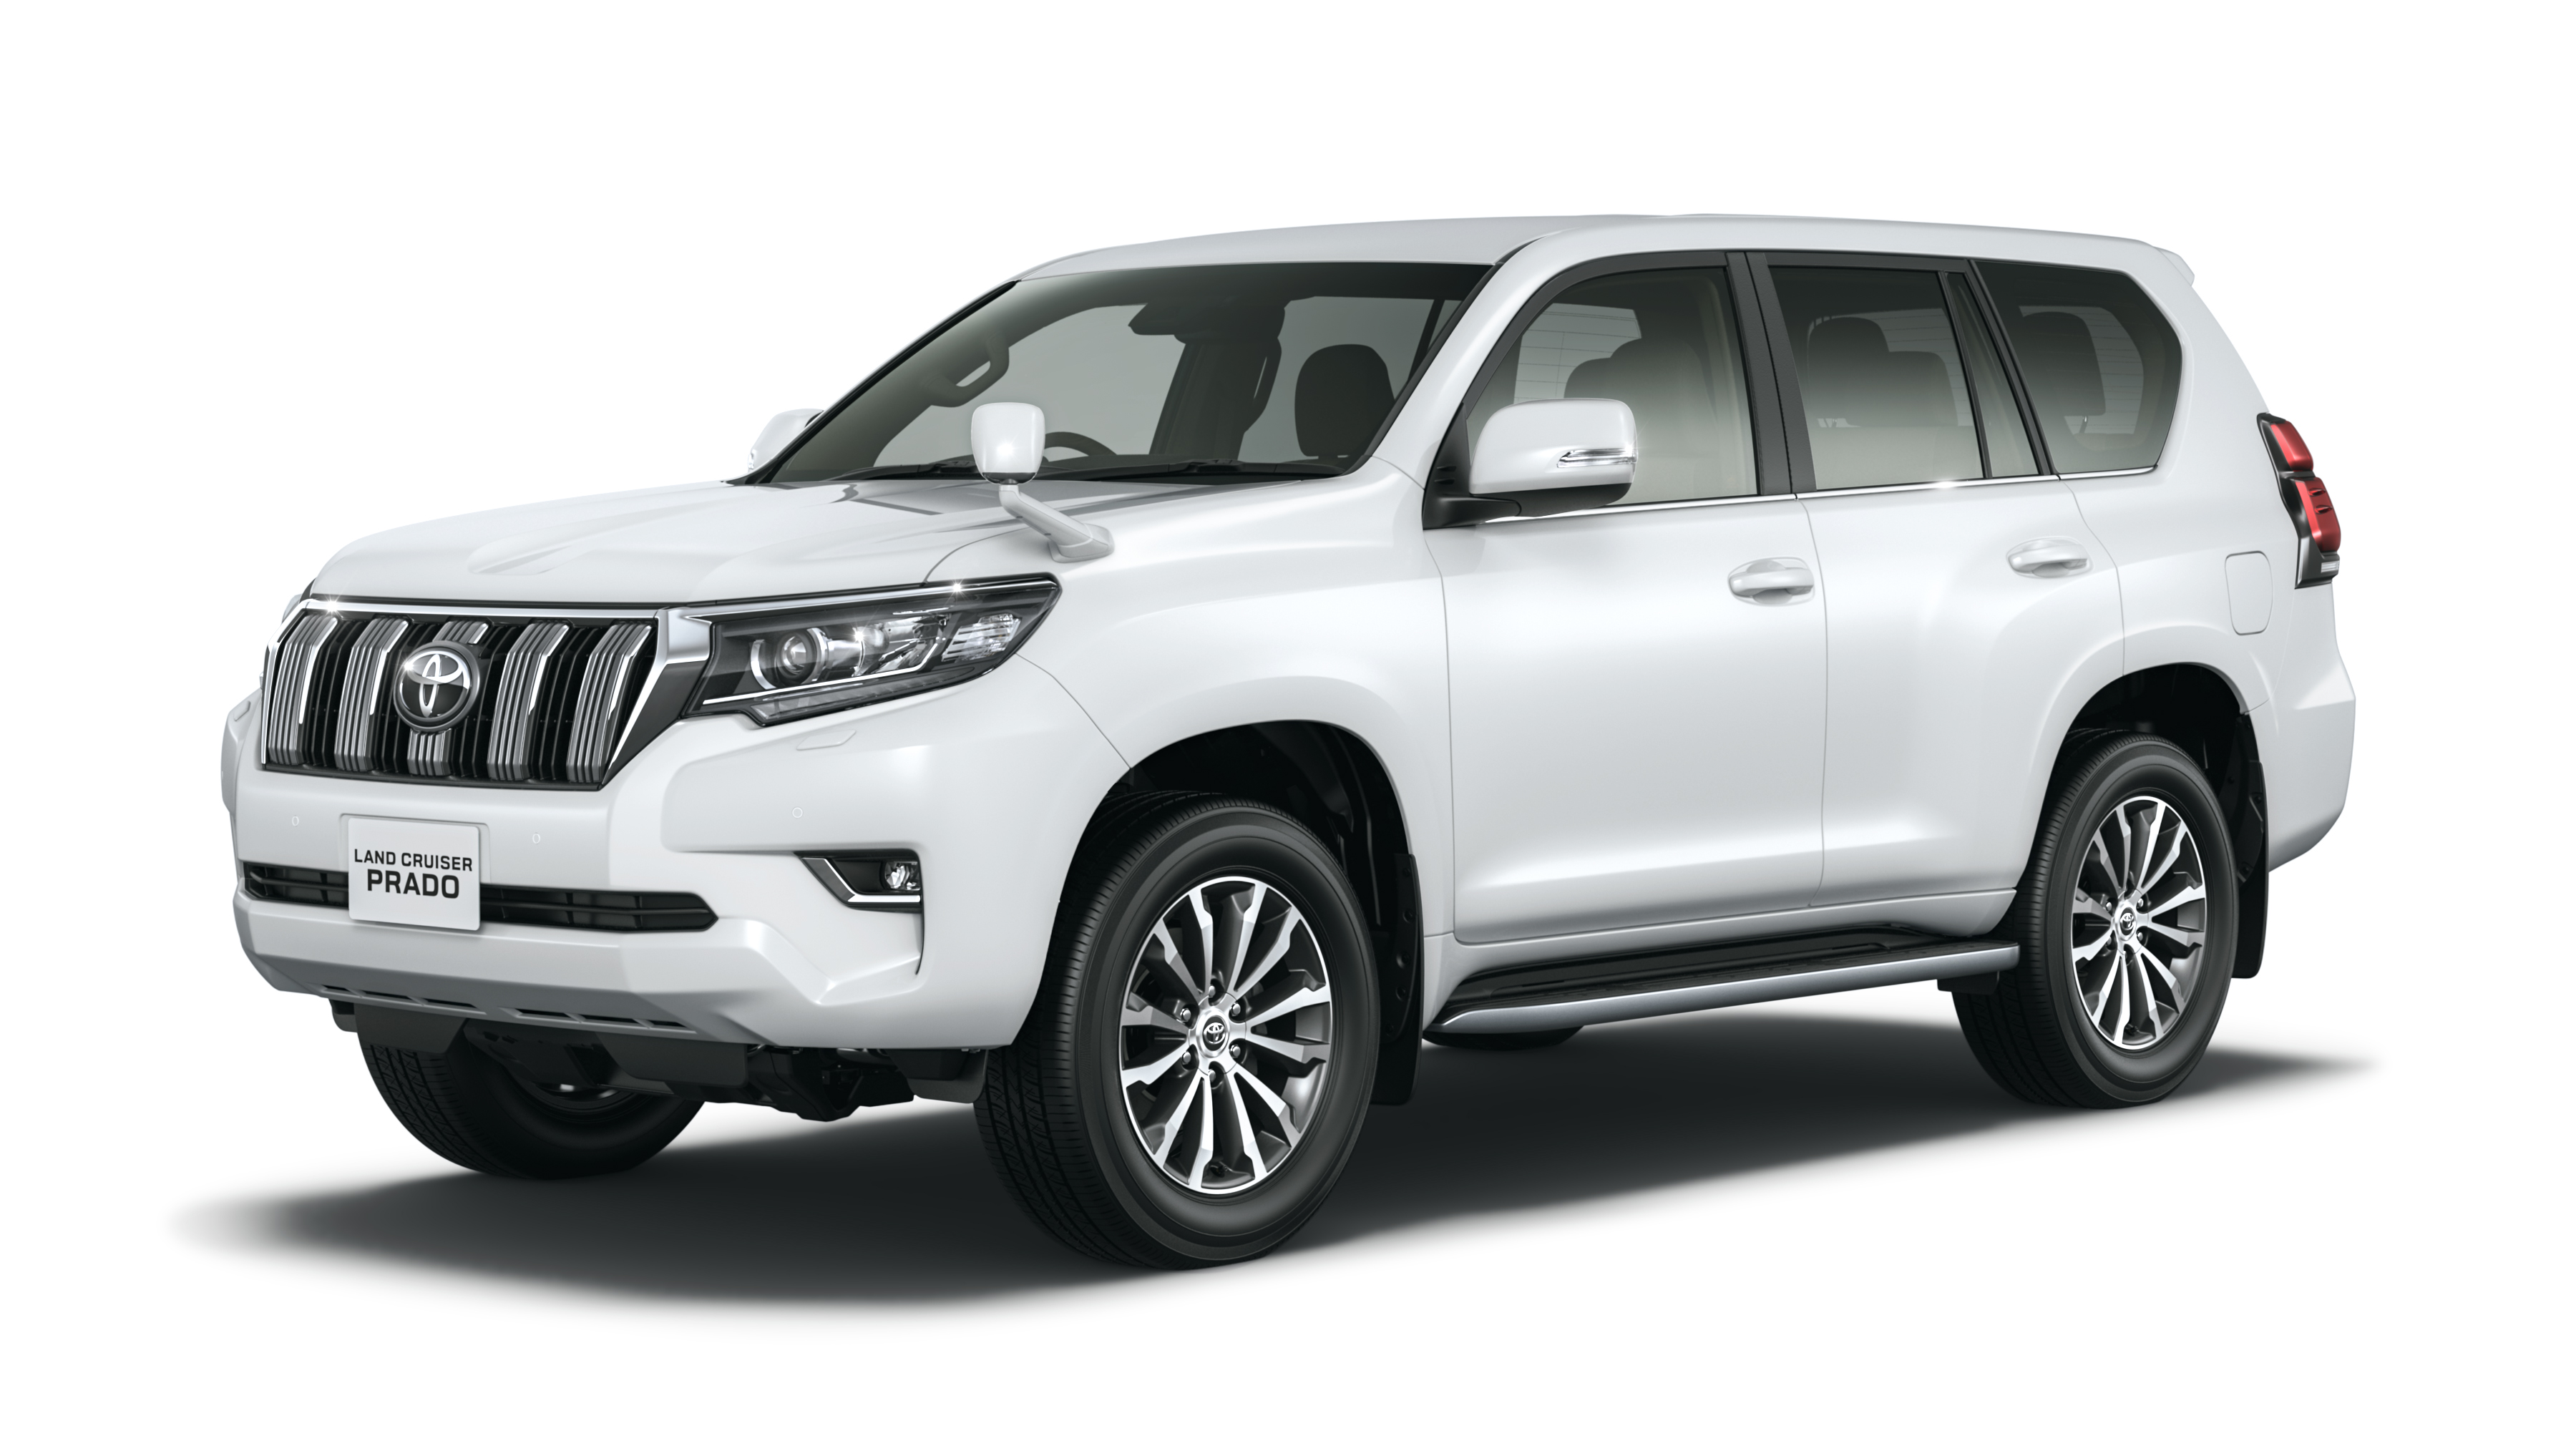 2018 Toyota Land Cruiser Prado Facelift Unveiled Image 709694